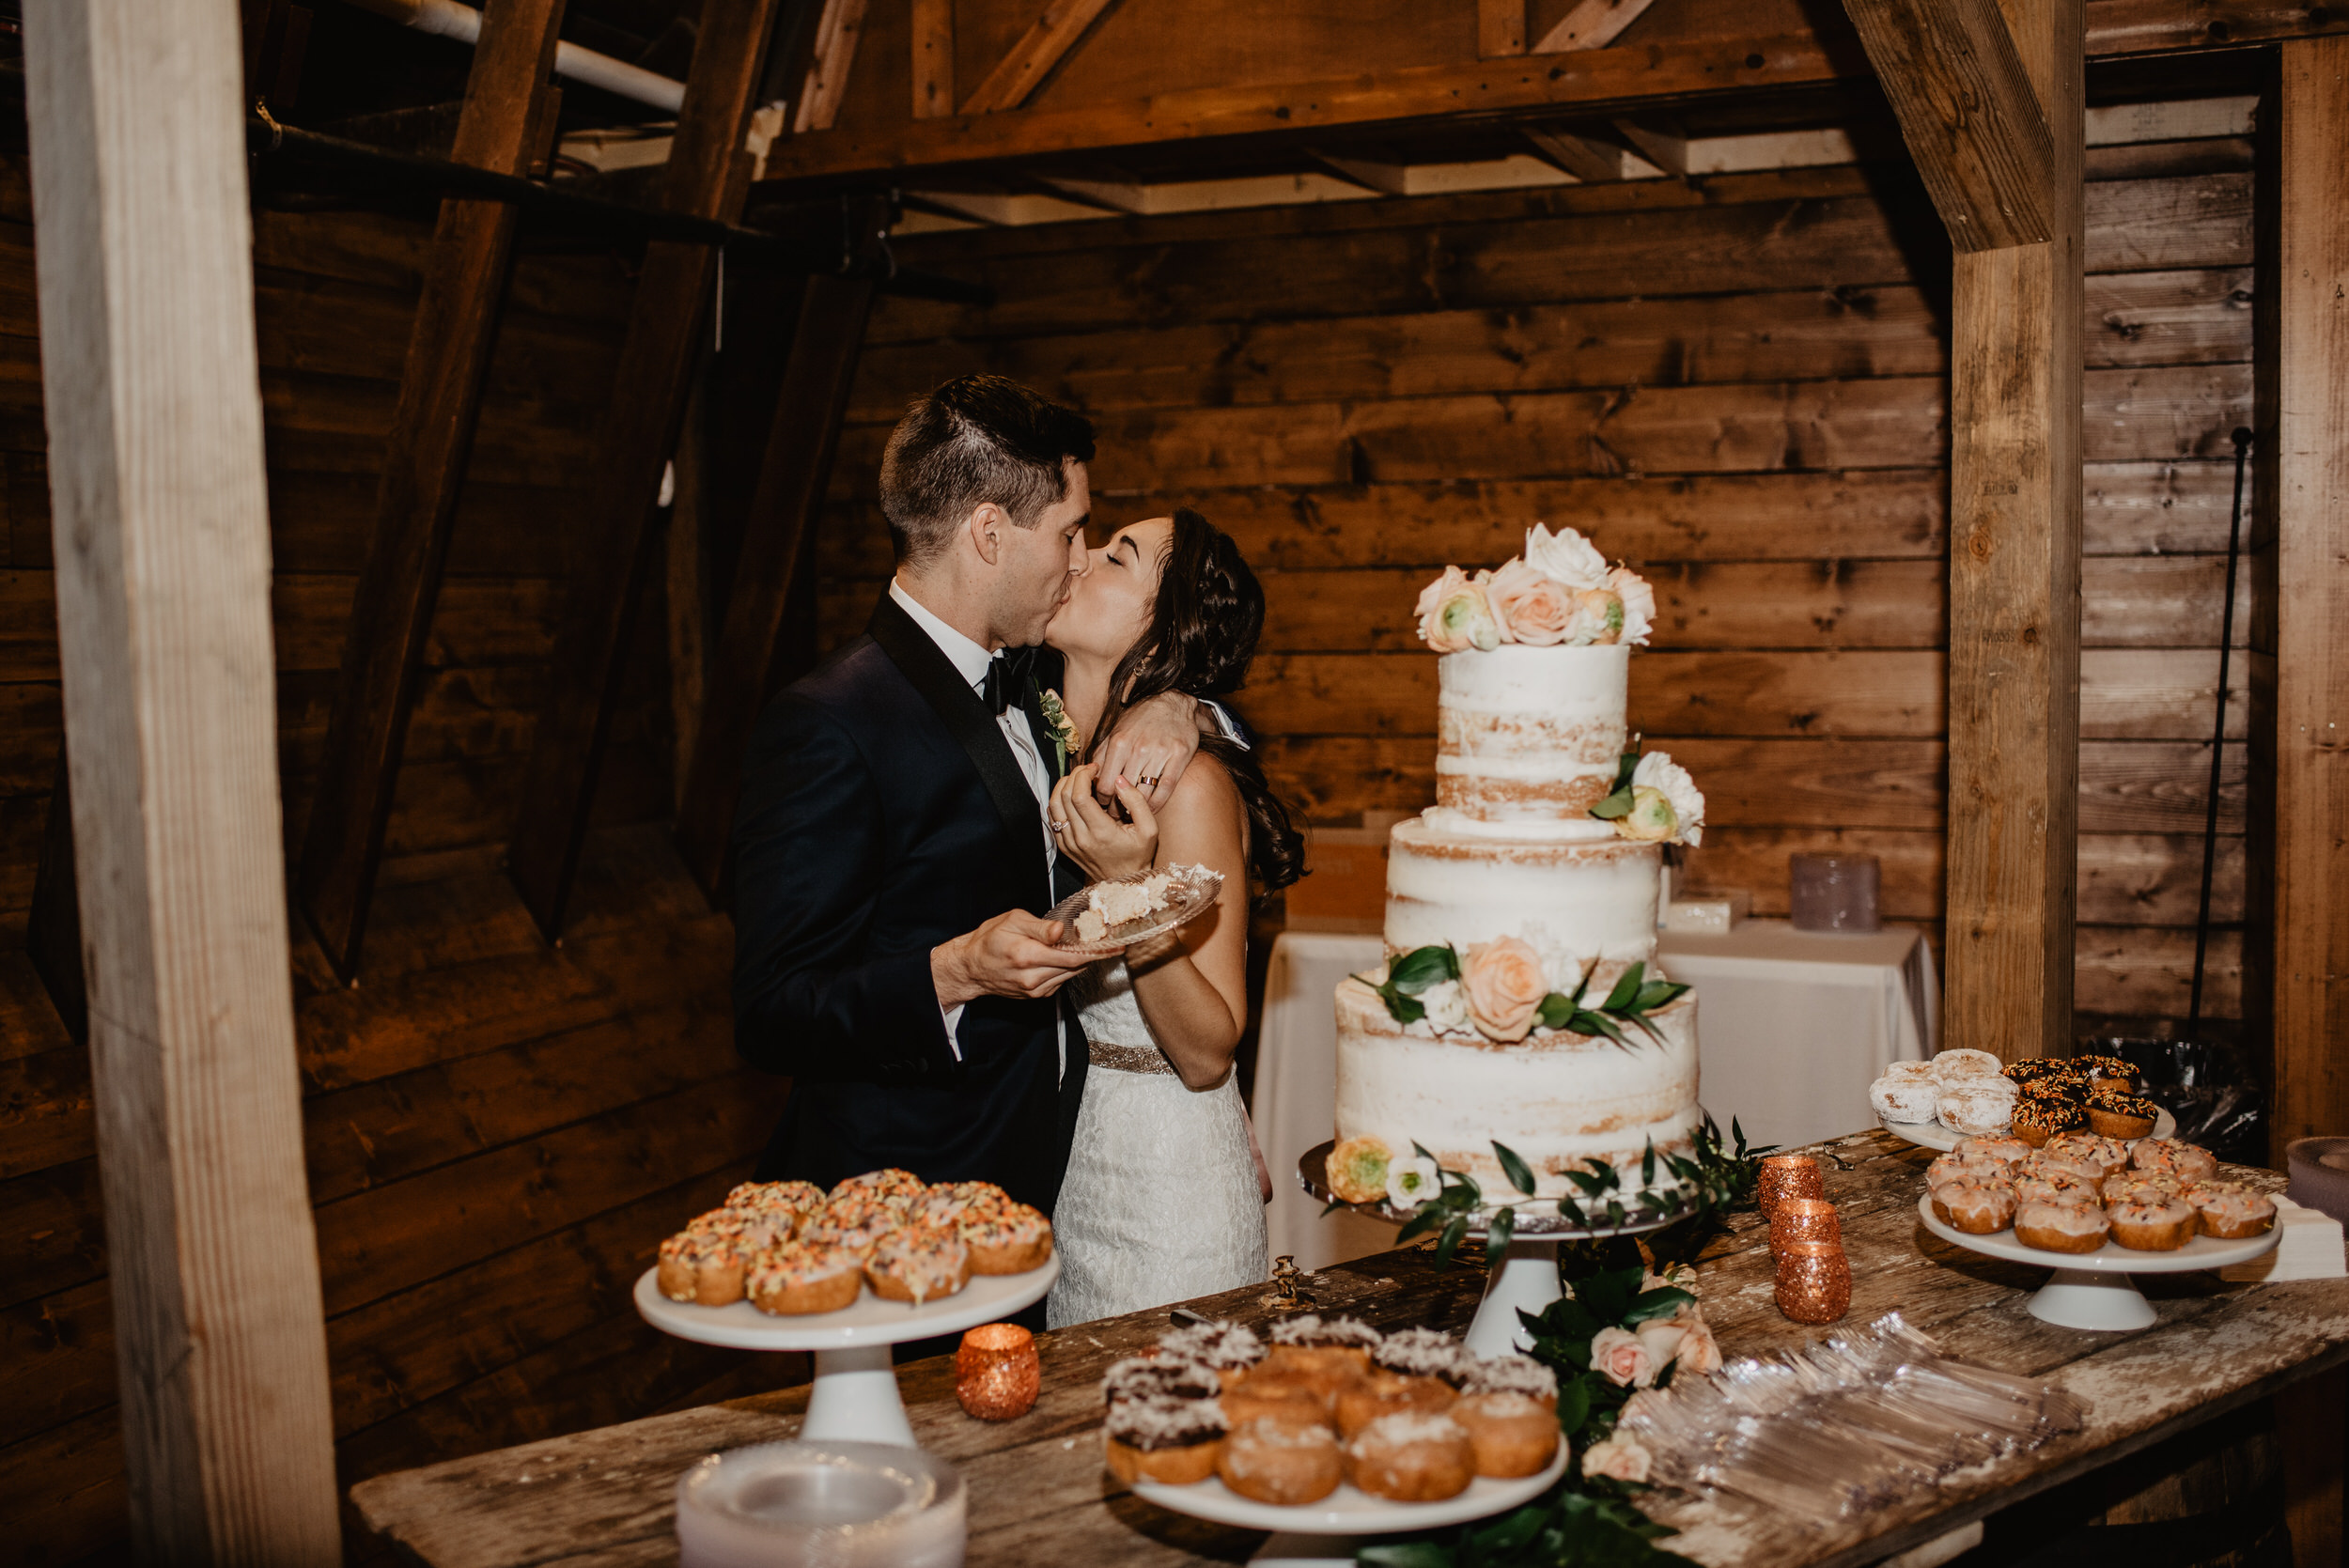 The Barn at the Ackerhurst Dairy Farm Omaha Nebraska Wedding Kaylie Sirek Photography116.jpg